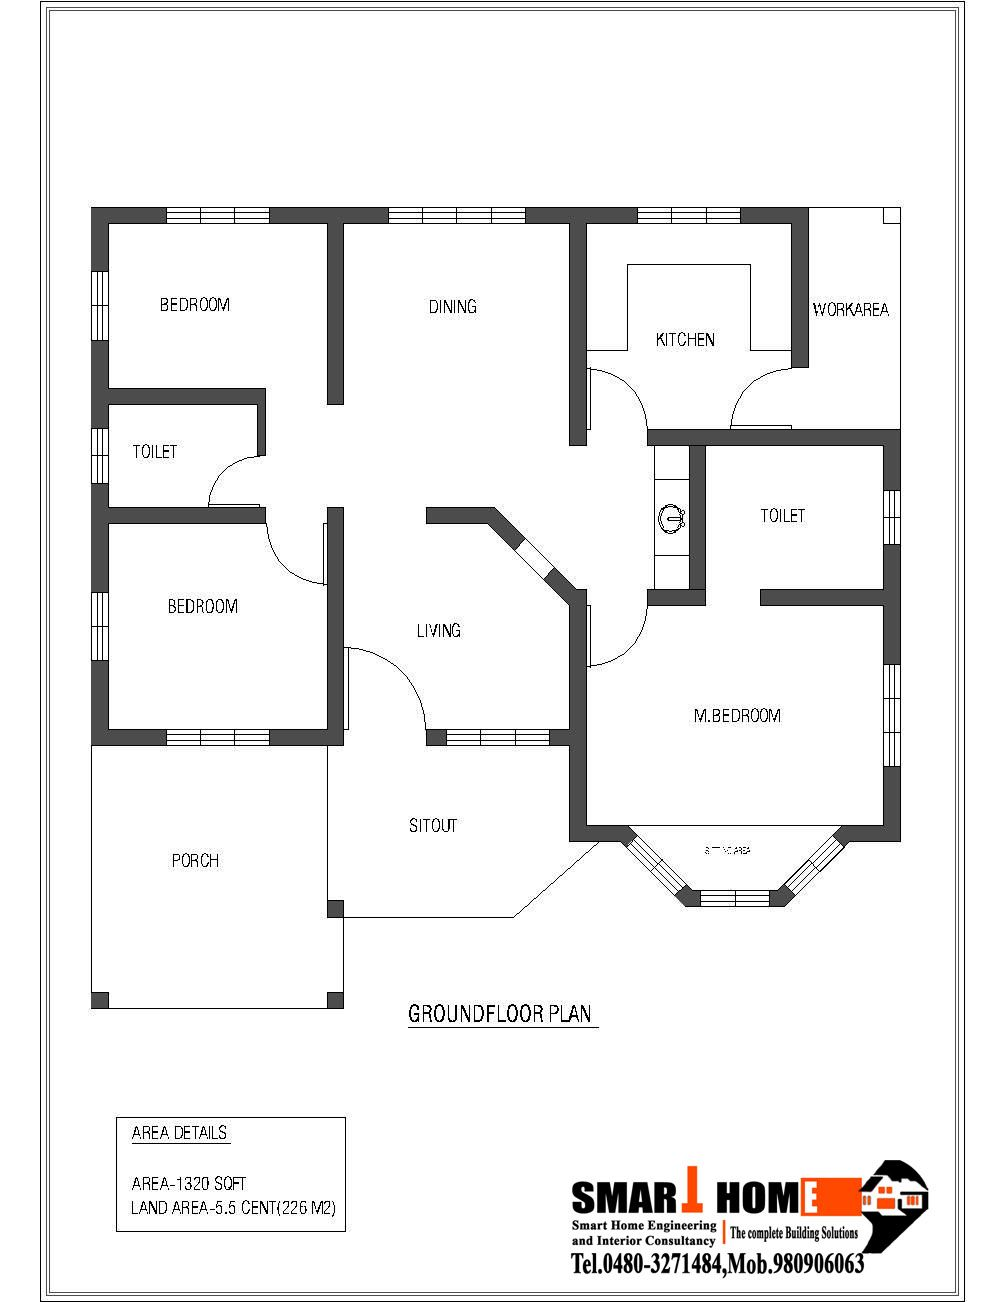 1320 sqft kerala style 3 bedroom house plan from smart for Kerala home designs and floor plans